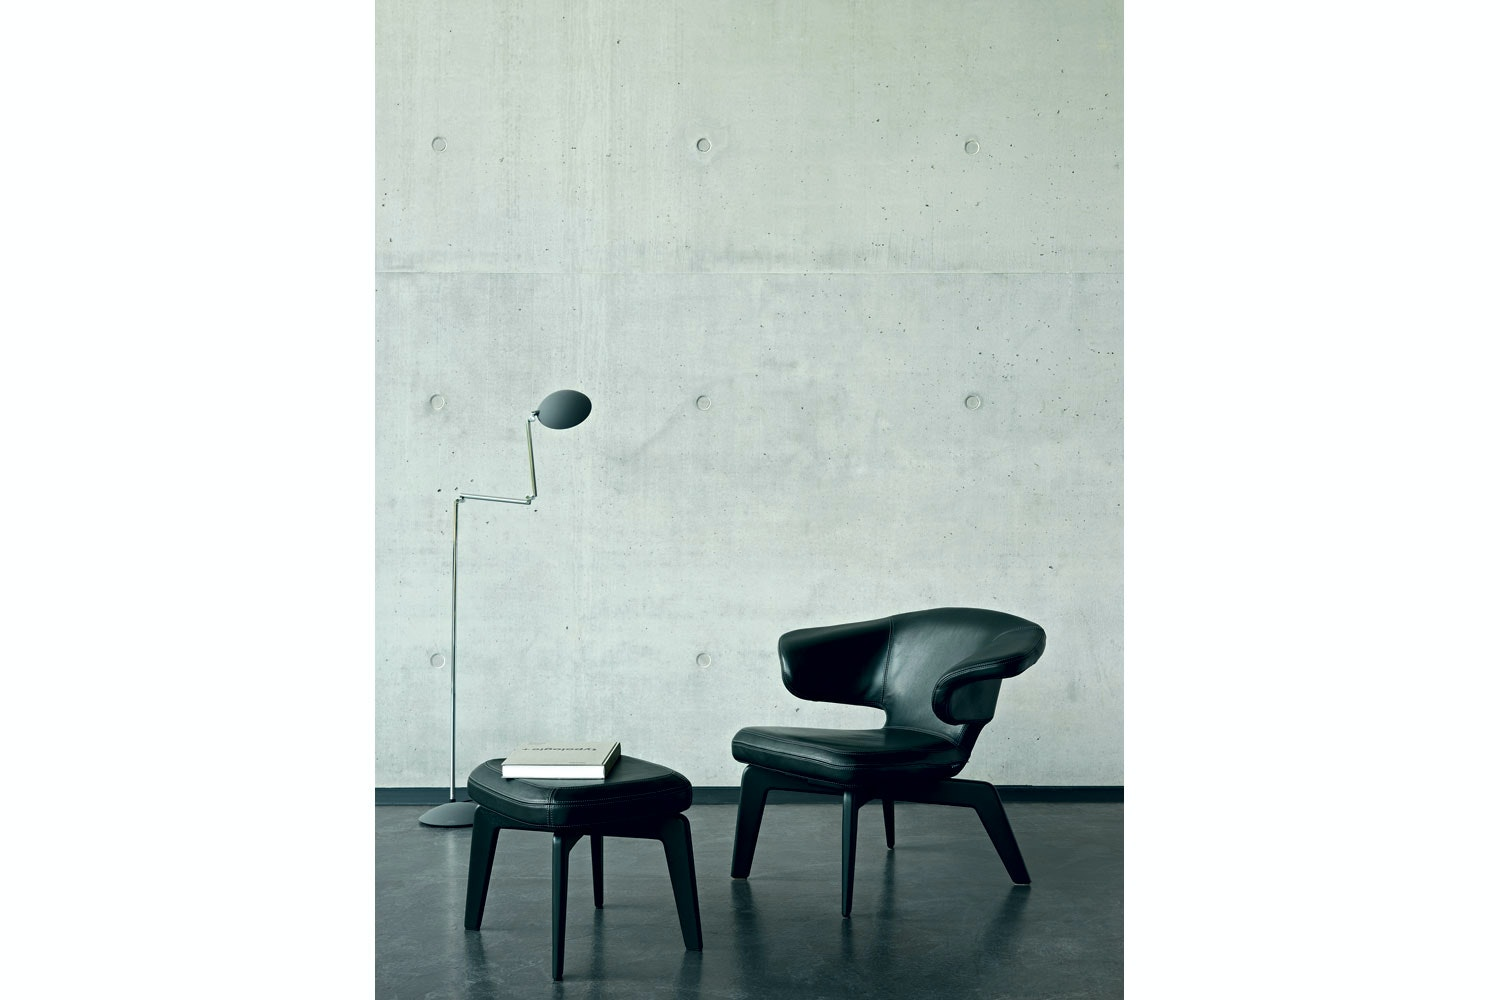 Munich Lounge Chair by Sauerbruch Hutton for ClassiCon